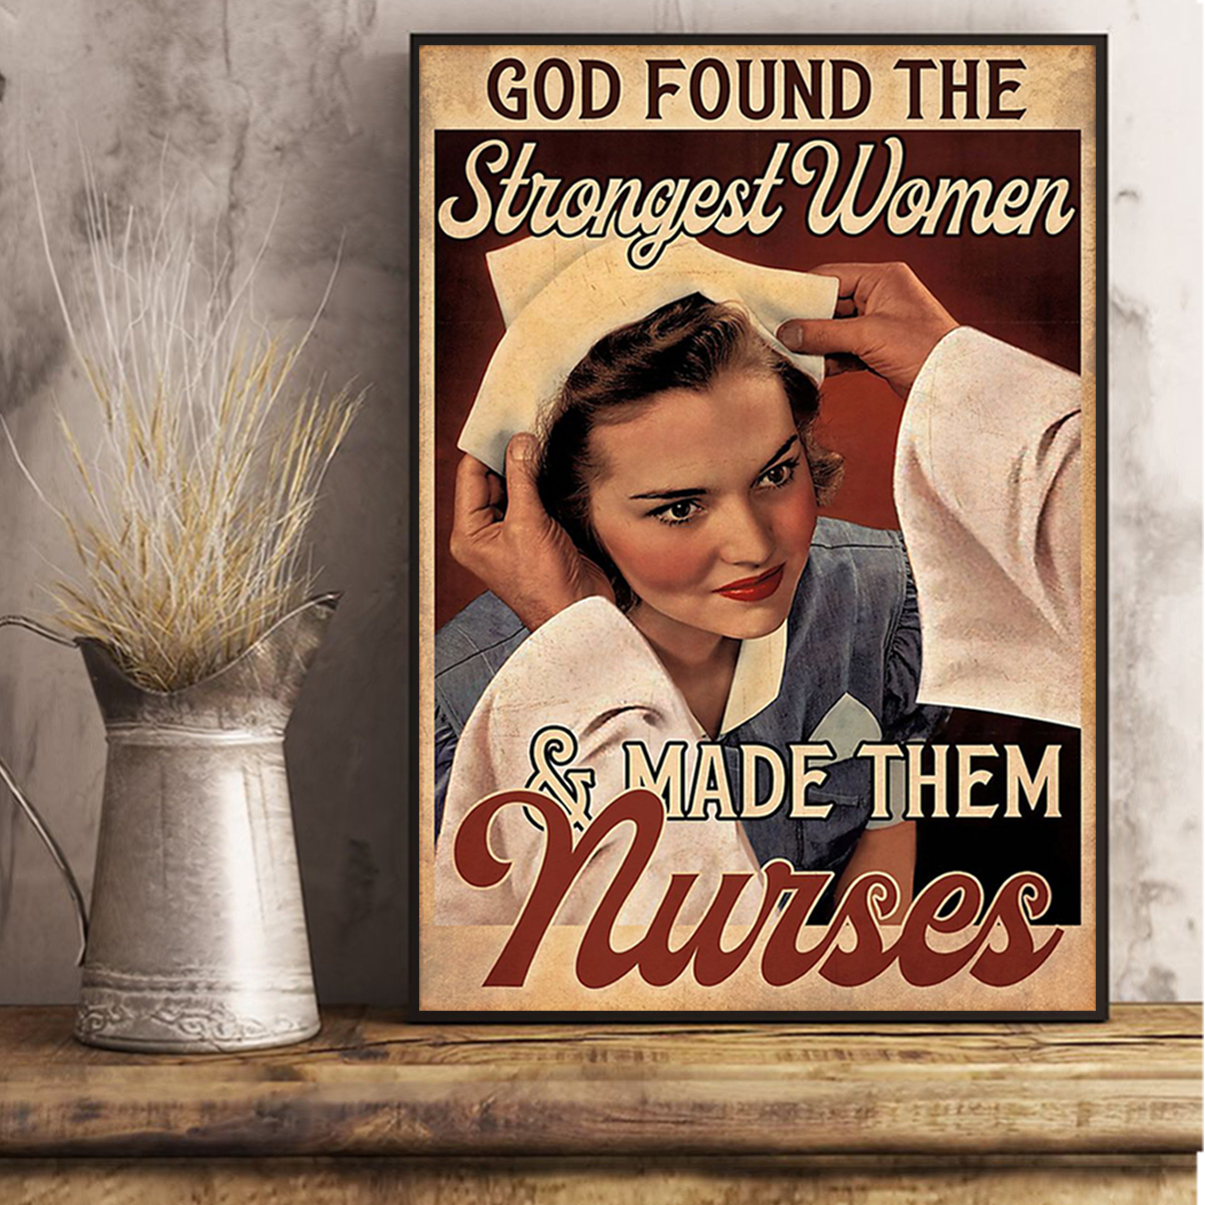 God found the strongest women and made them nurses poster A2